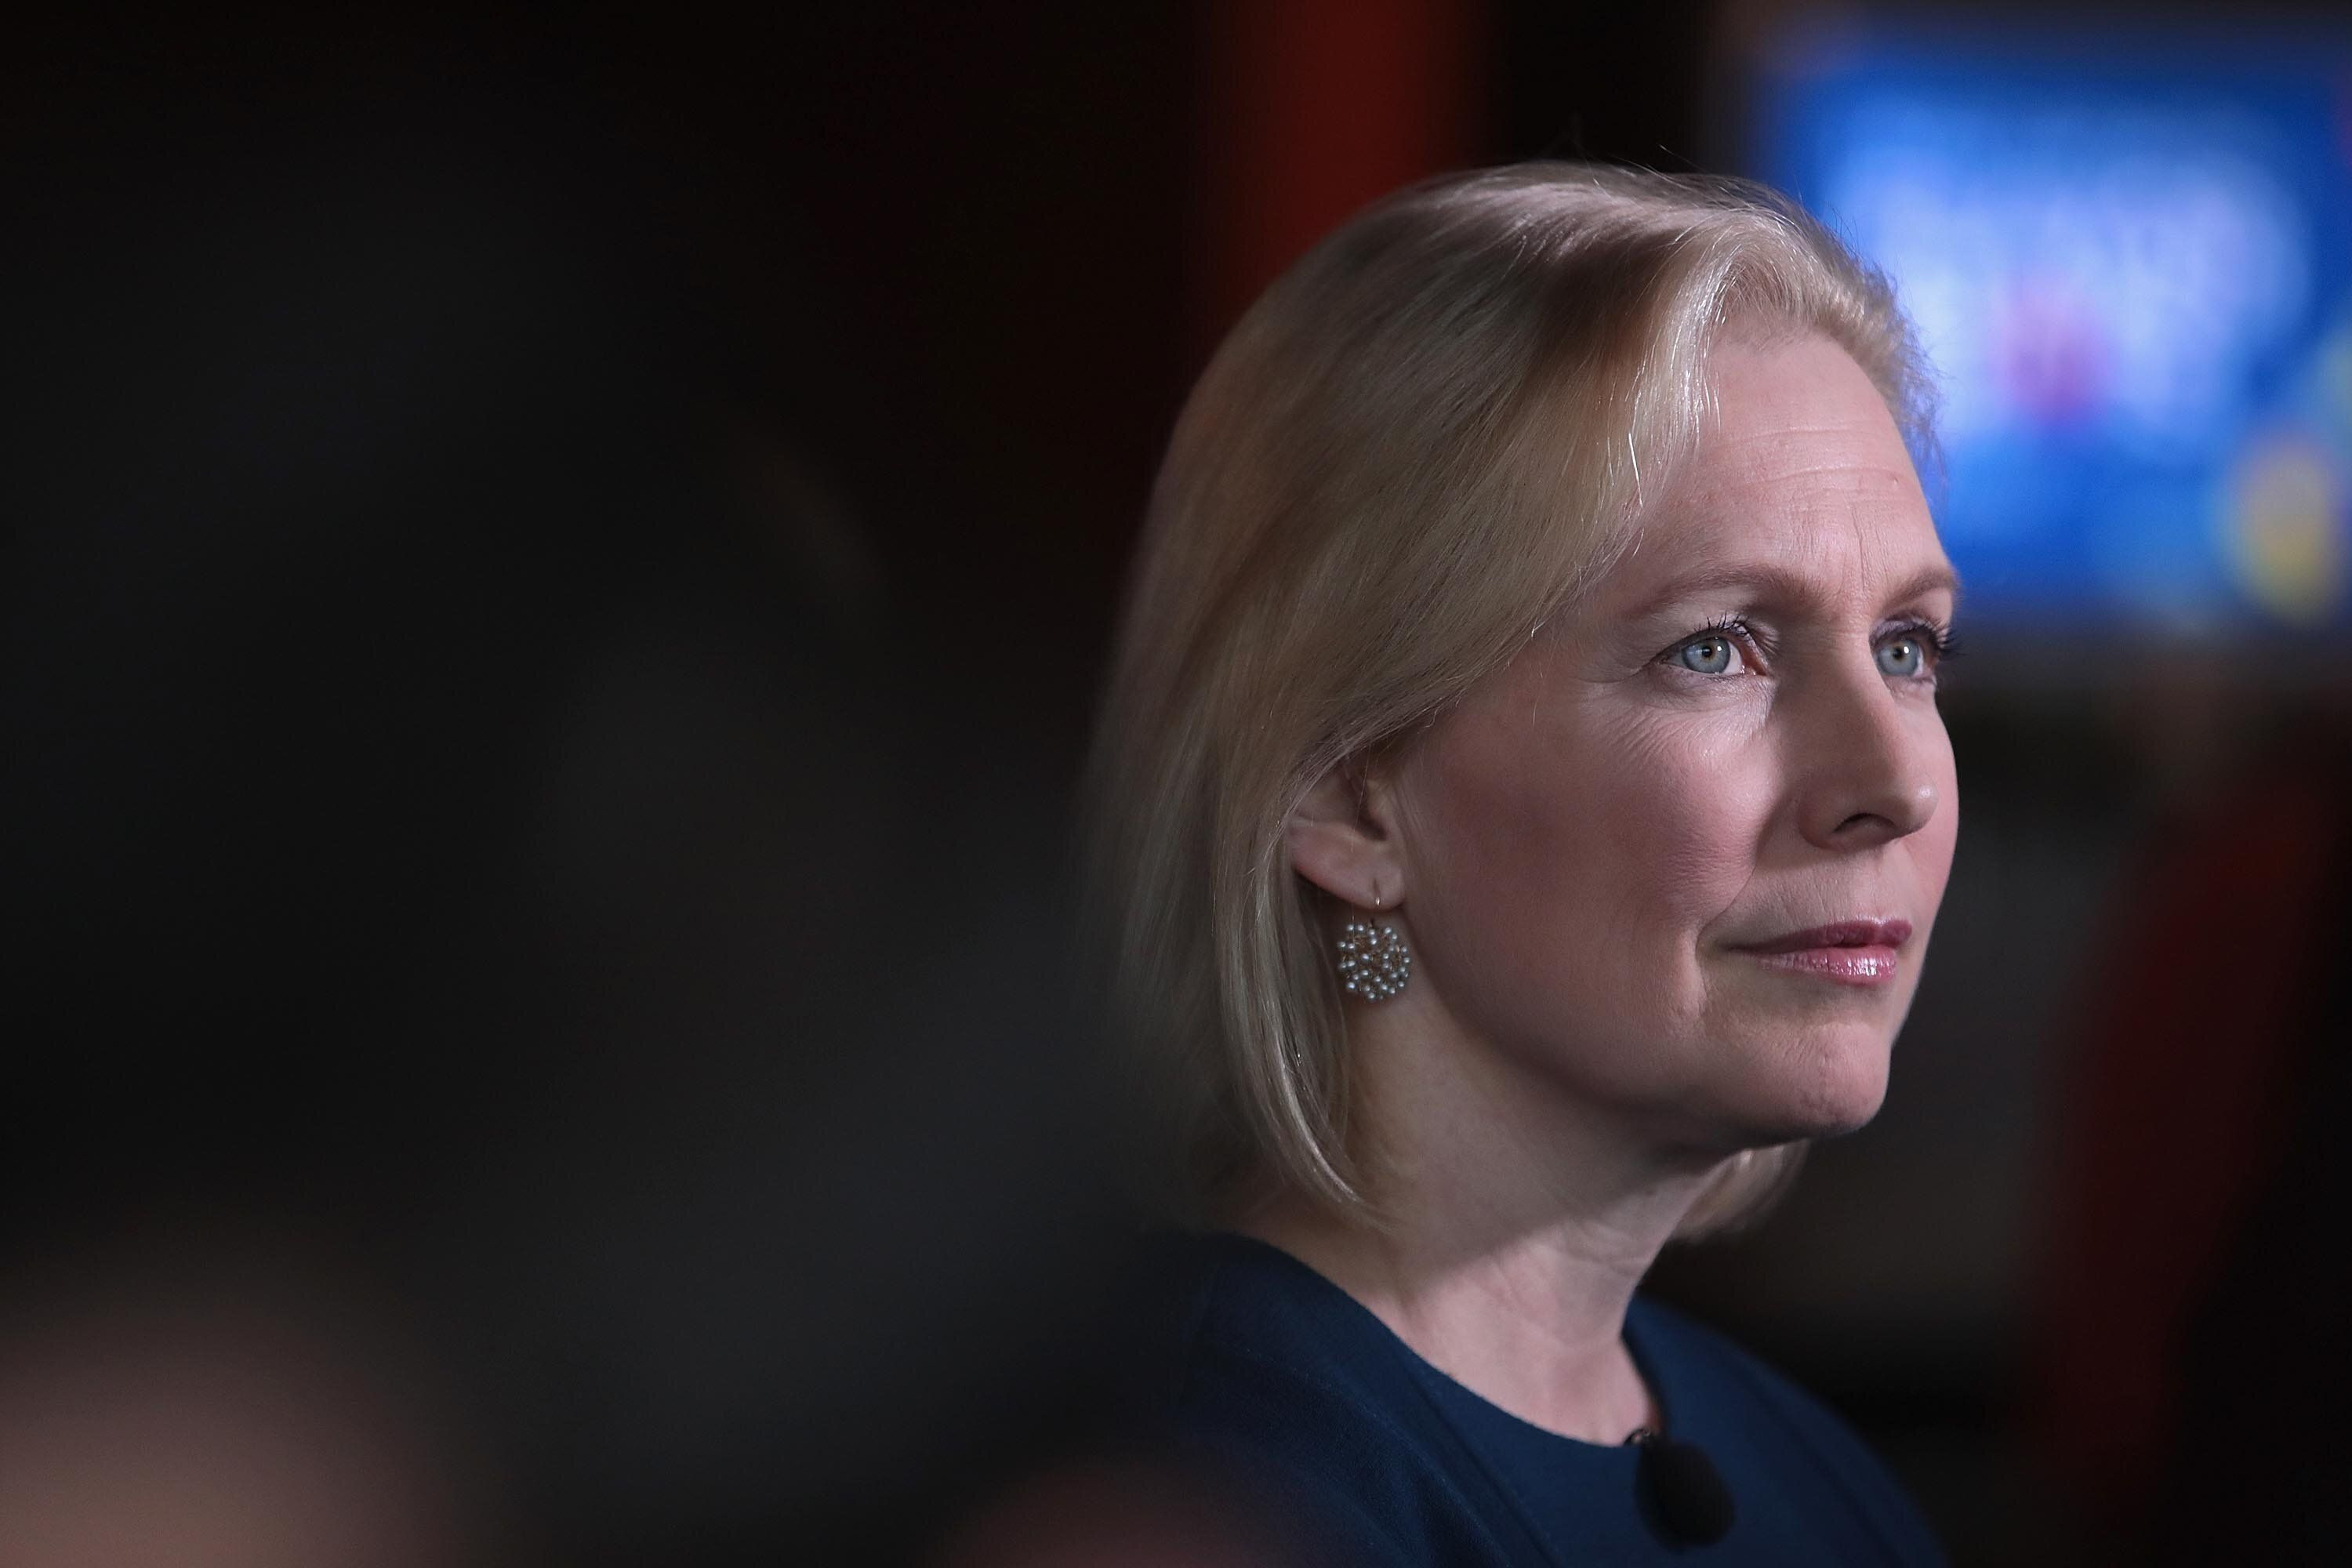 DES MOINES, IOWA - APRIL 17: Democratic presidential candidate Sen. Kirsten Gillibrand (D-NY) speaks to guests during a campaign event with Drake University Democrats at Papa Keno's restaurant on April 17, 2019 in Des Moines, Iowa. Gillibrand has campaign stops scheduled in the state through Friday.   (Photo by Scott Olson/Getty Images)